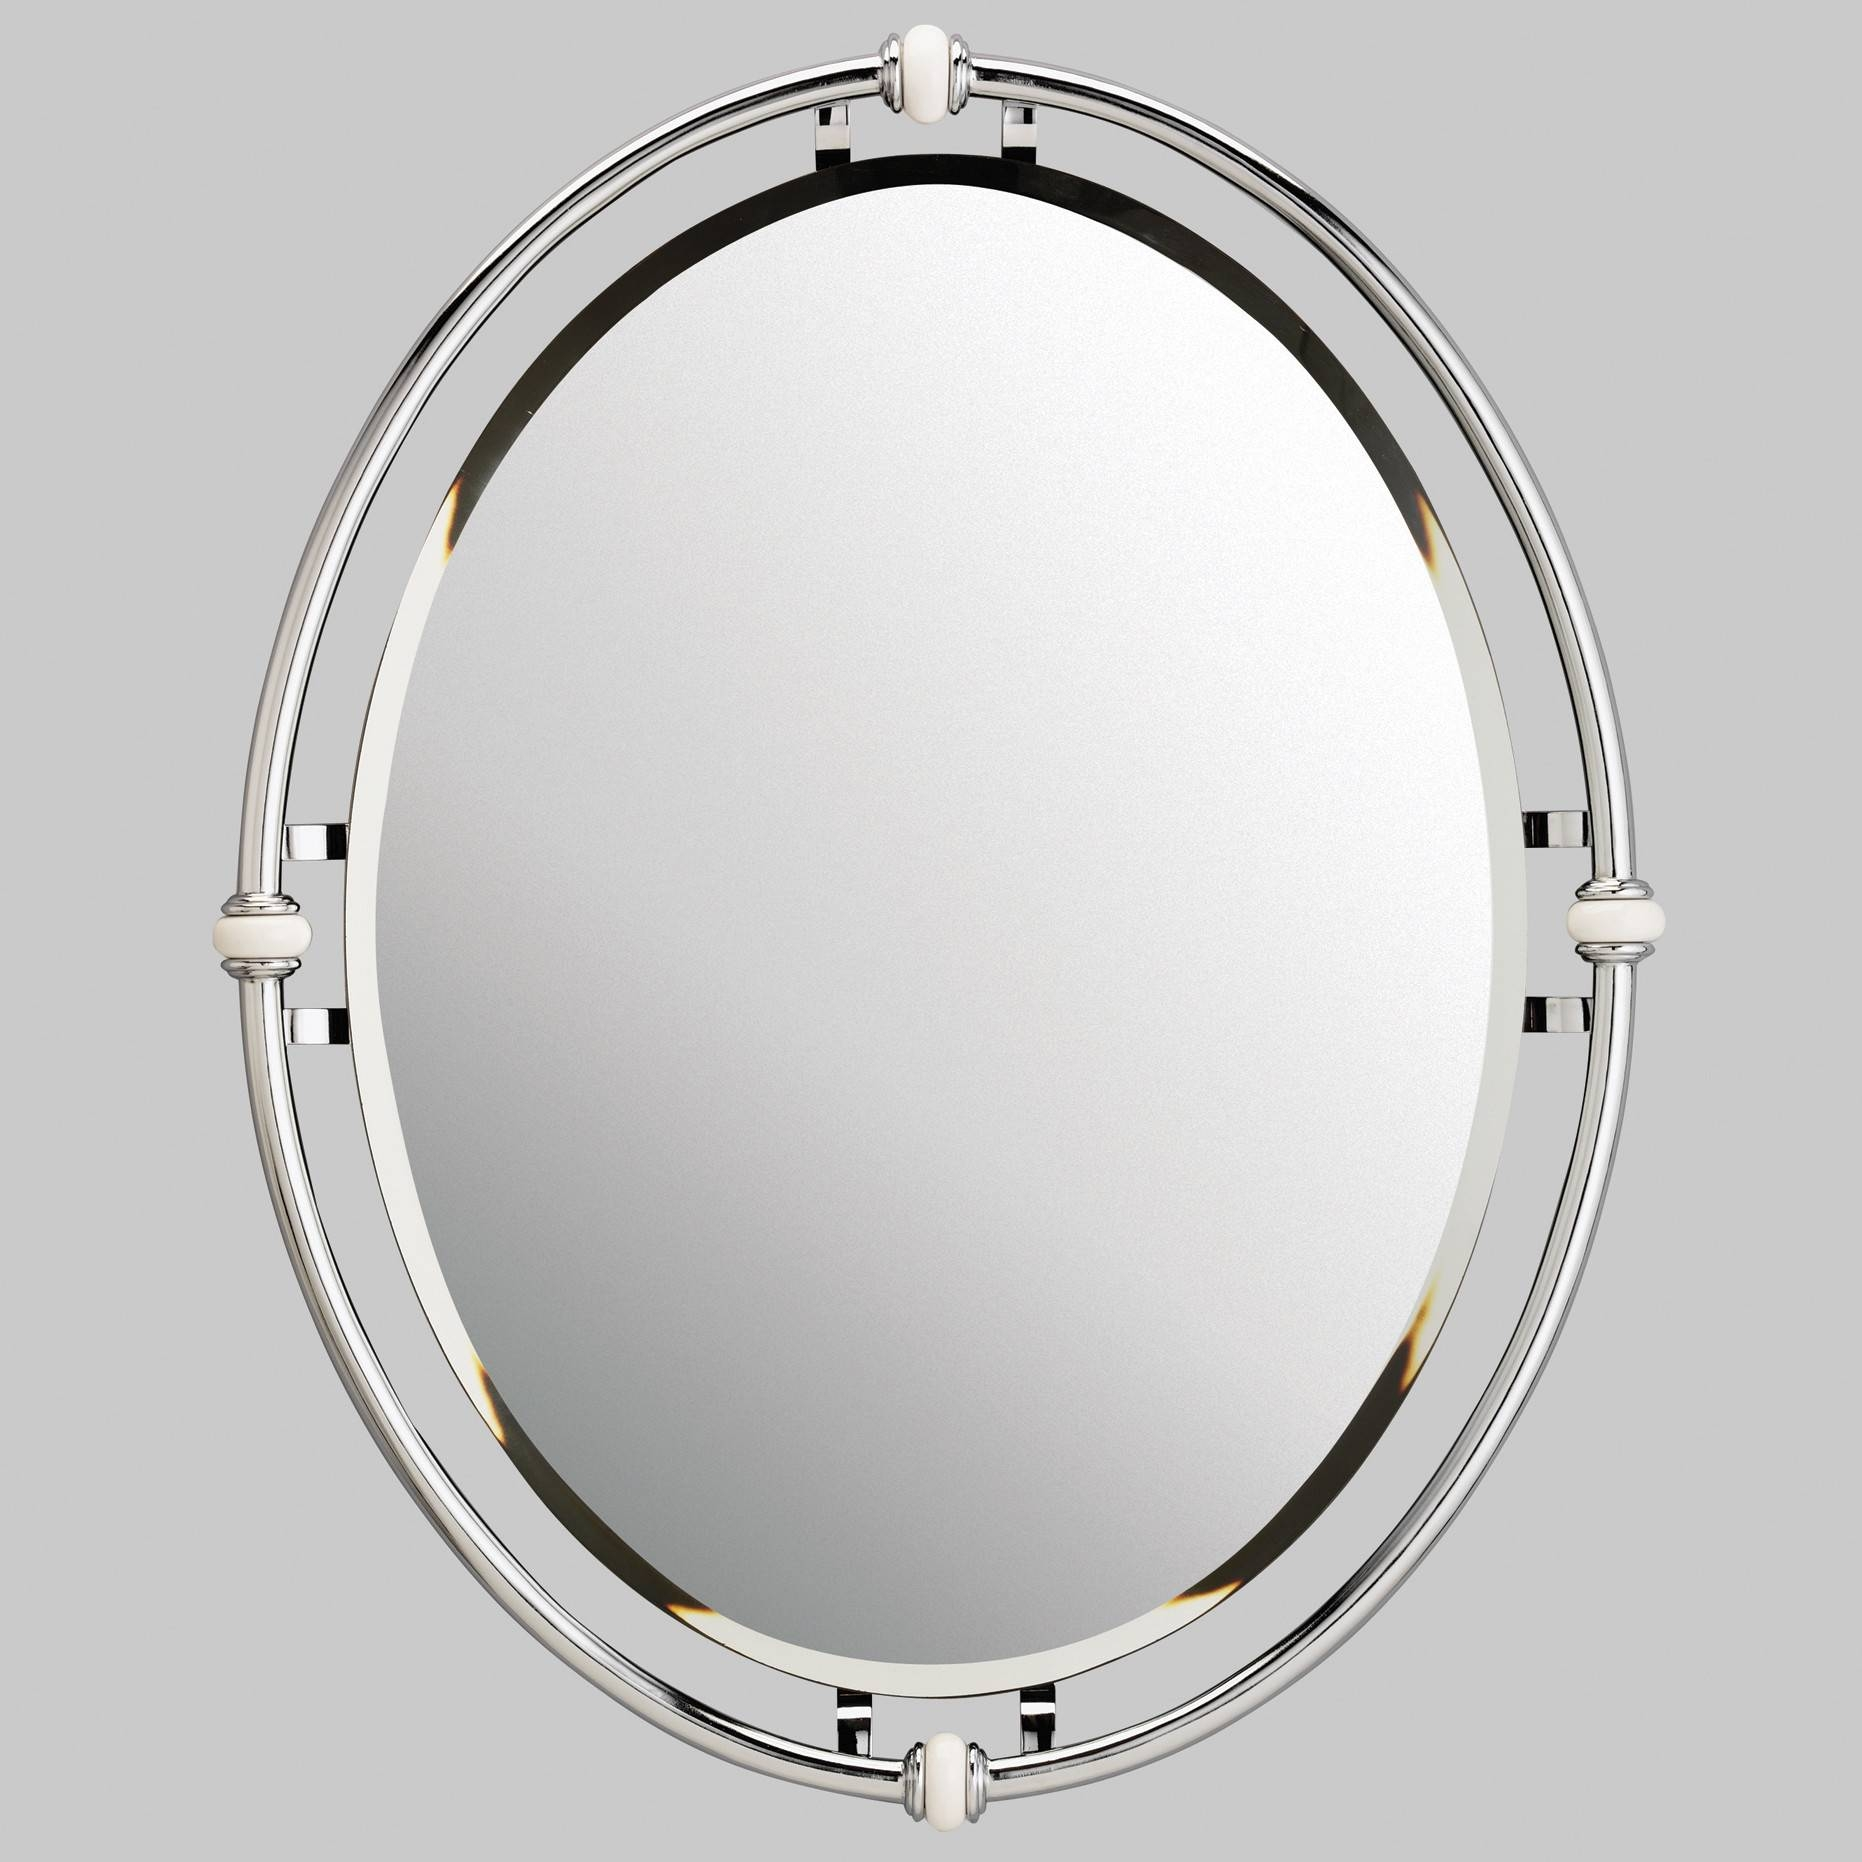 Extraordinary 70+ Wayfair Oval Bathroom Mirrors Inspiration Design For Bevelled Oval Mirrors (View 4 of 15)